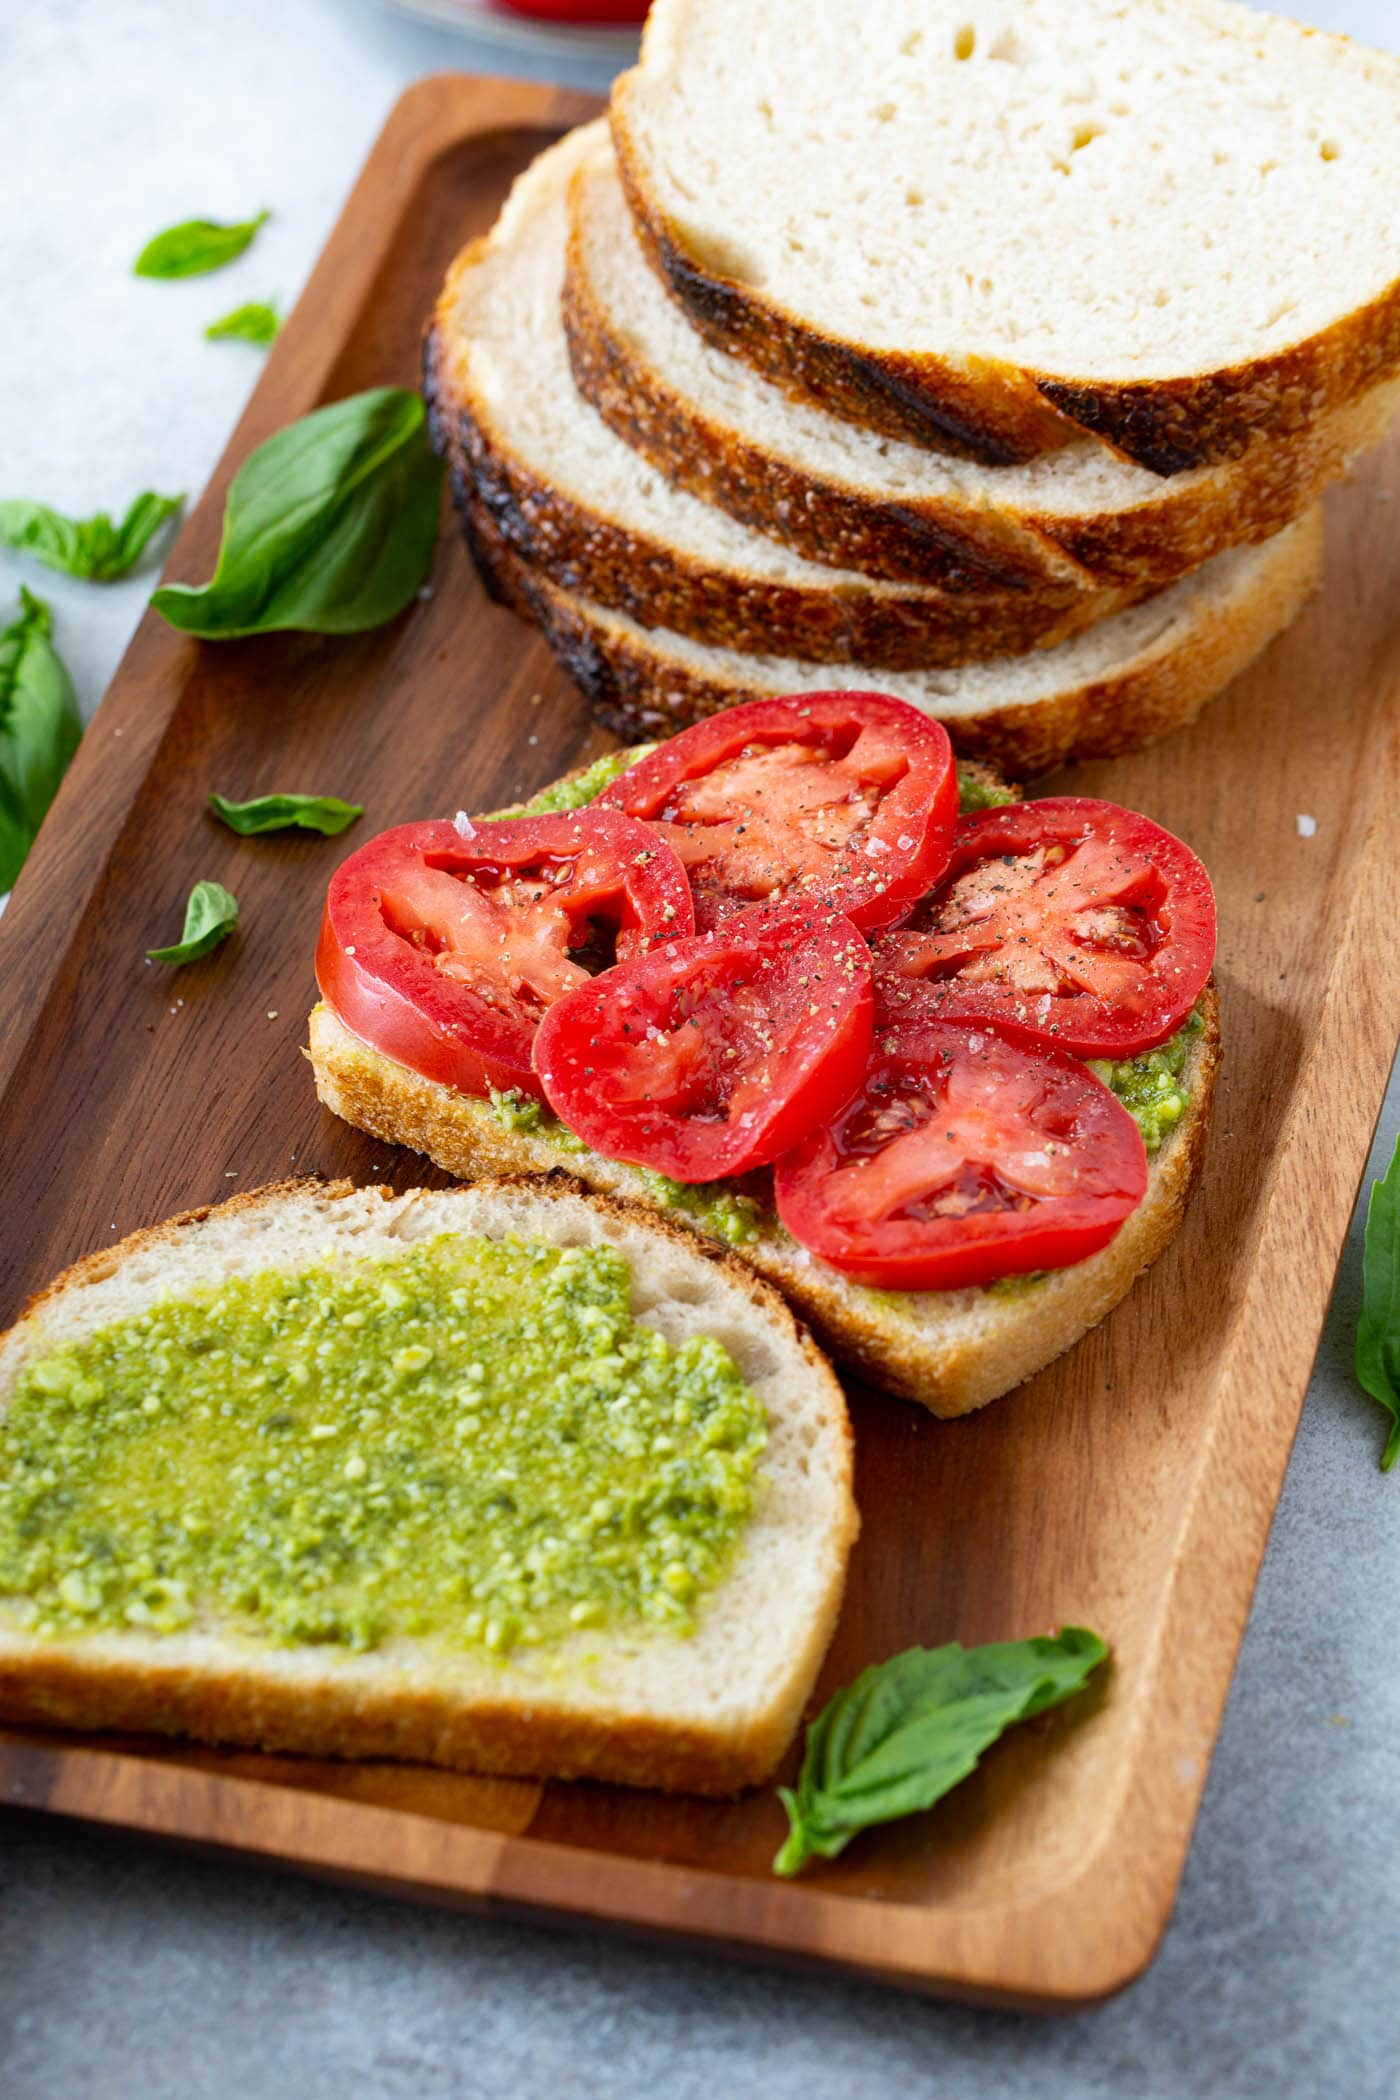 A stack of four slices of bread in the background with a slice of bread that has arugula and five slices of tomatoes on top. Another slice of bread that has been spread with pesto is laying next to it. There are basil leaves scattered on the wooden tray.